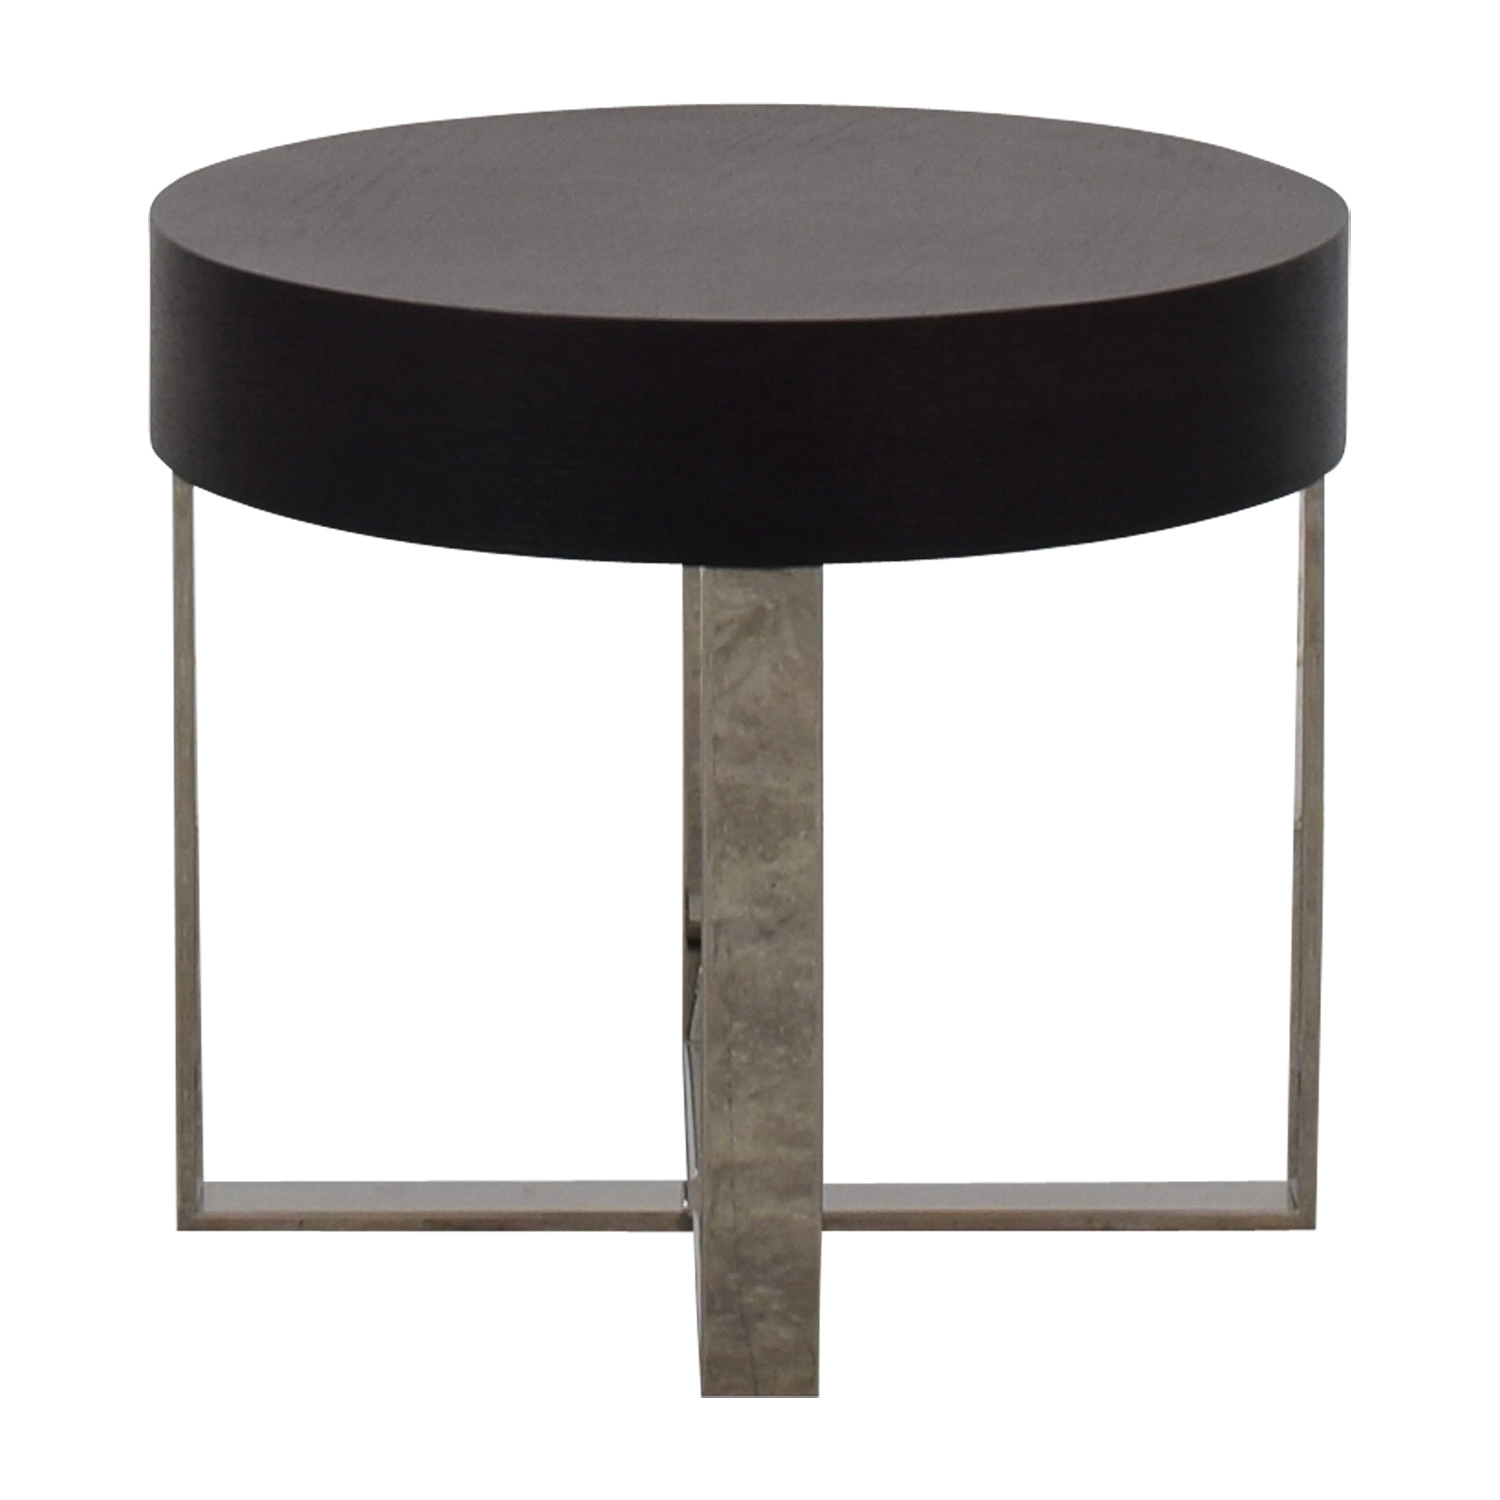 Modenature Modenature Round Side Table Tables